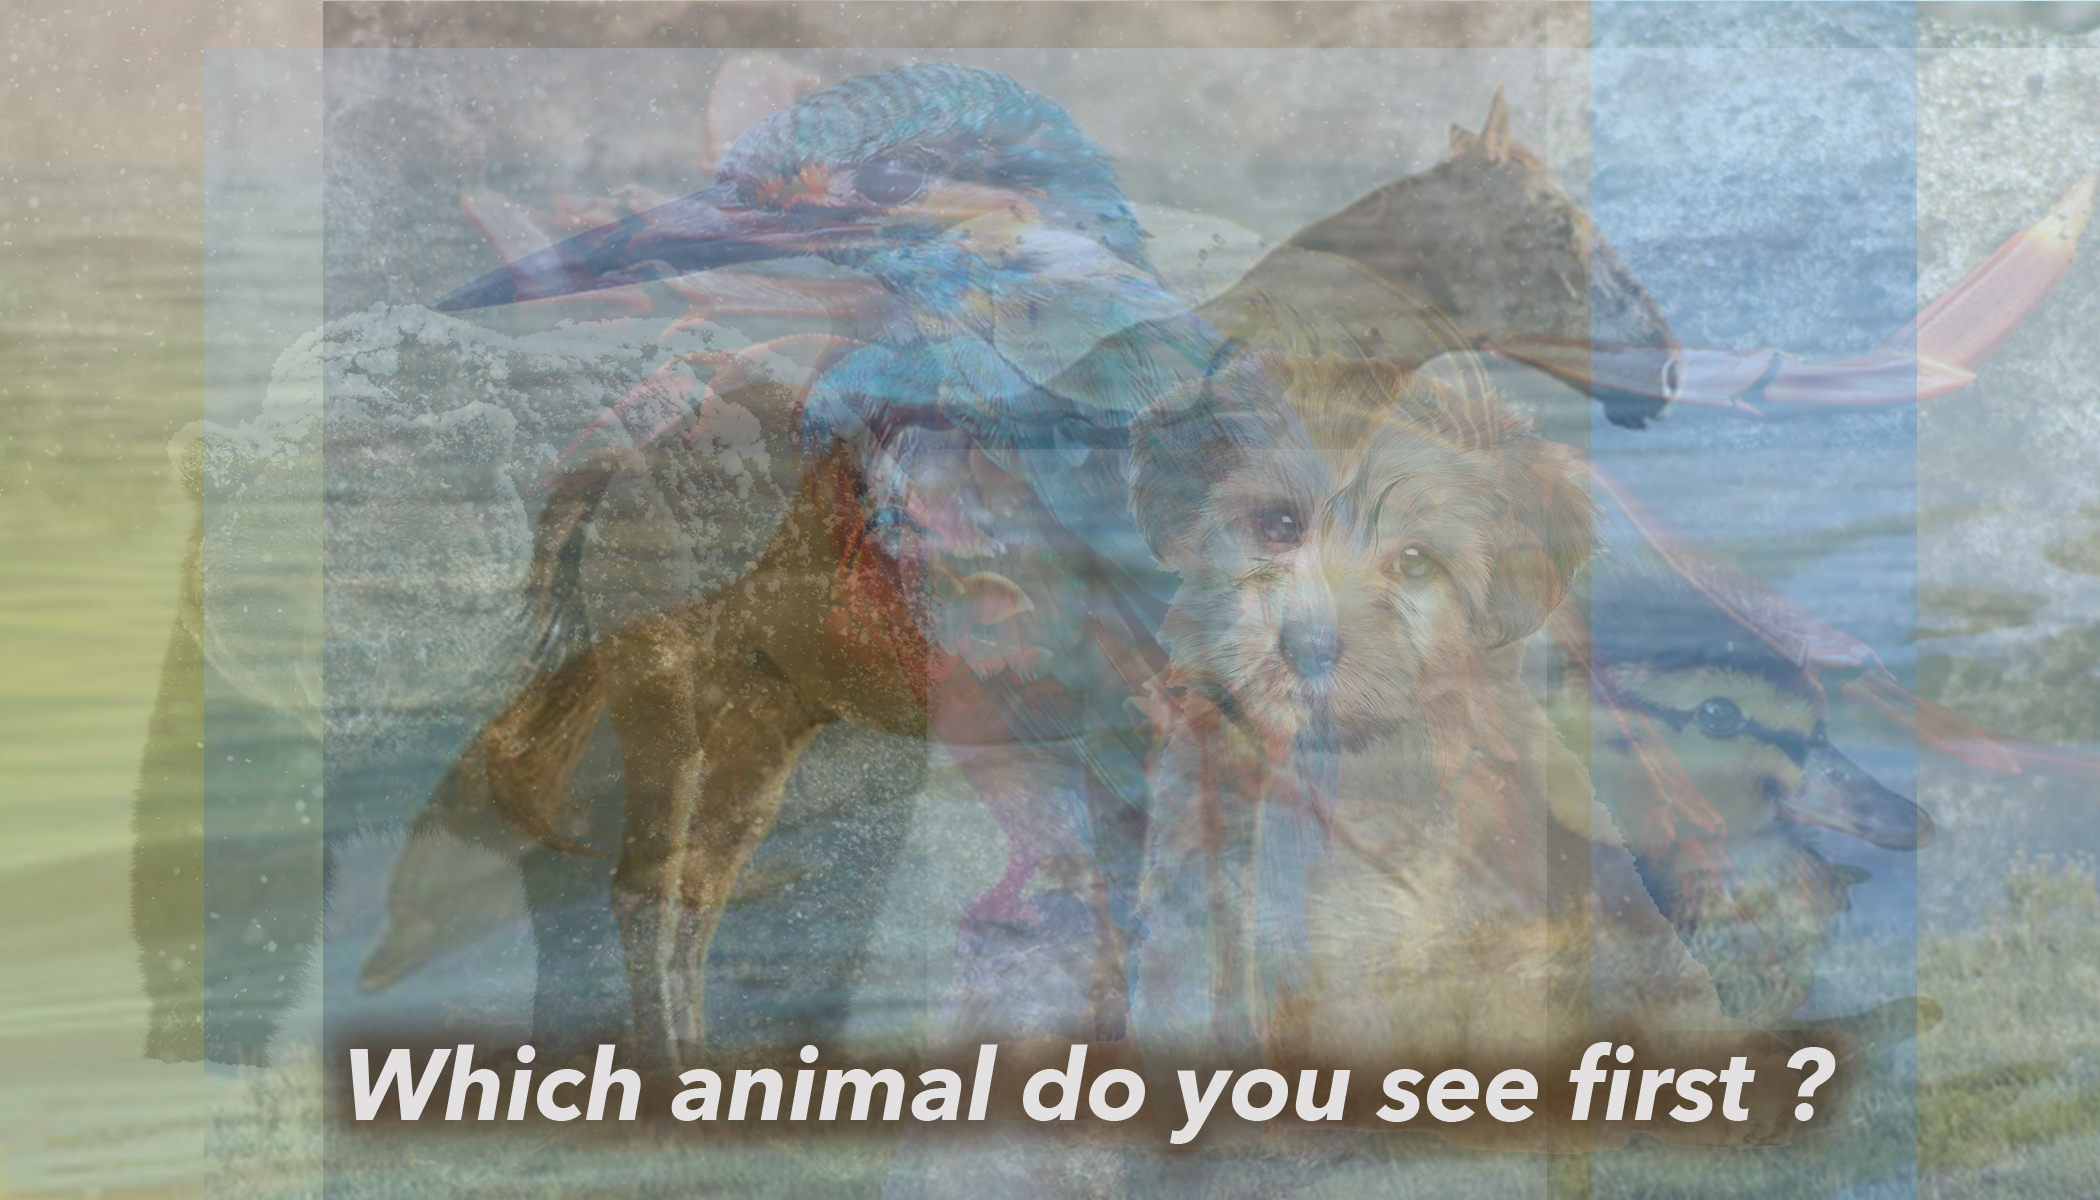 The First Animal You See in This Photo Can Reveal Who You Truly Are As a Person